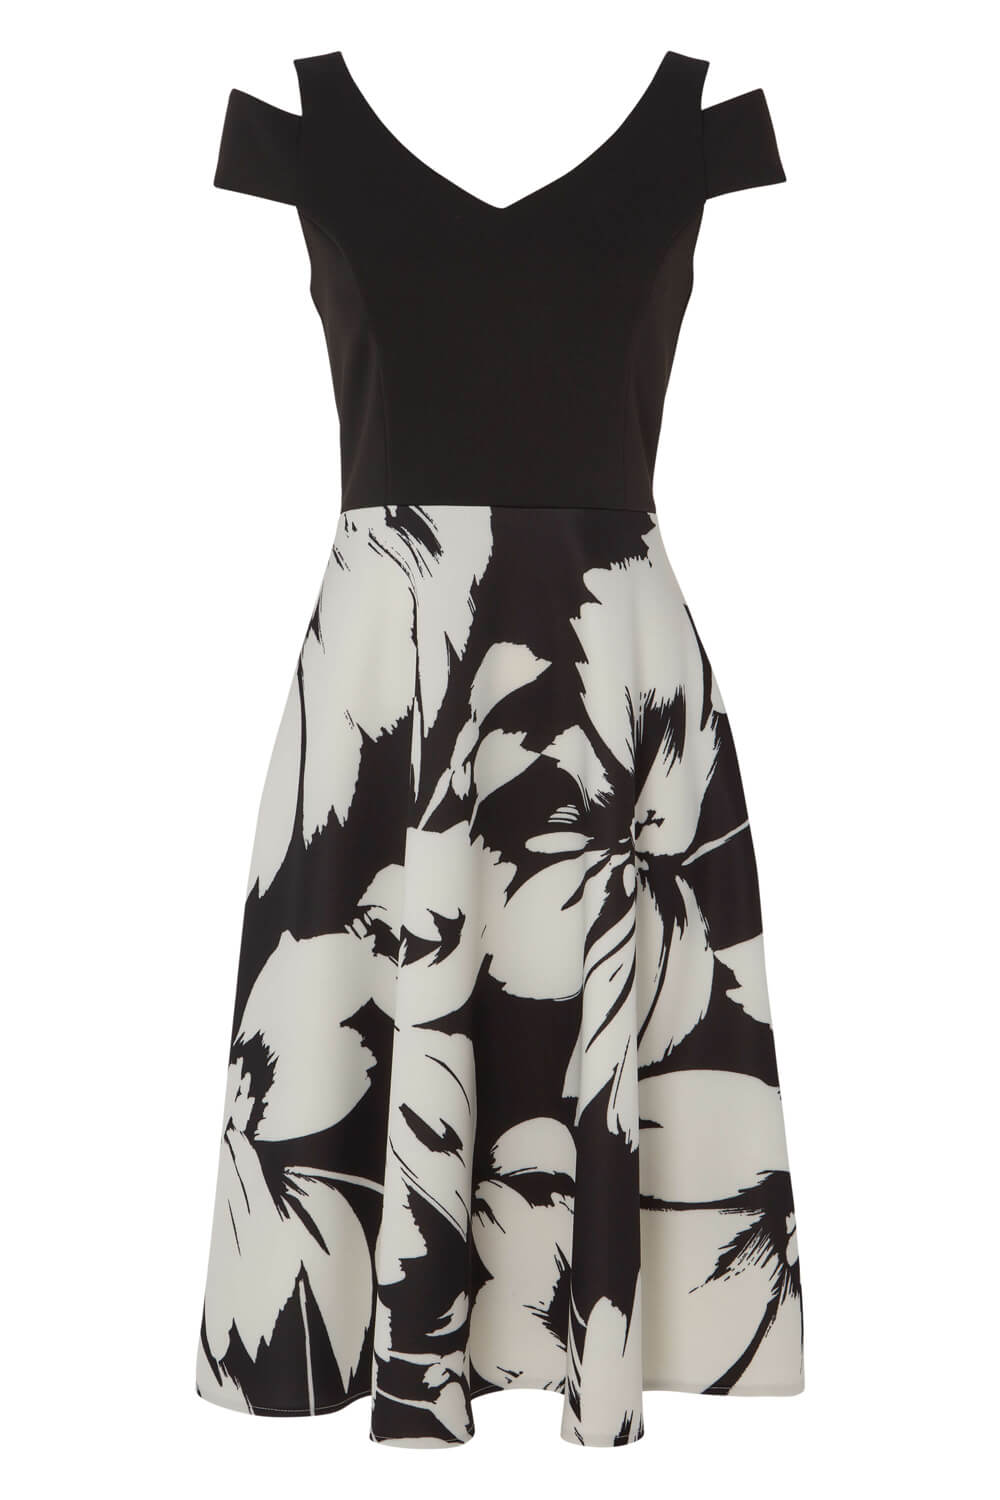 Roman-Originals-Women-039-s-Fit-and-Flare-Floral-Scuba-Dress-Sizes-10-20 thumbnail 10